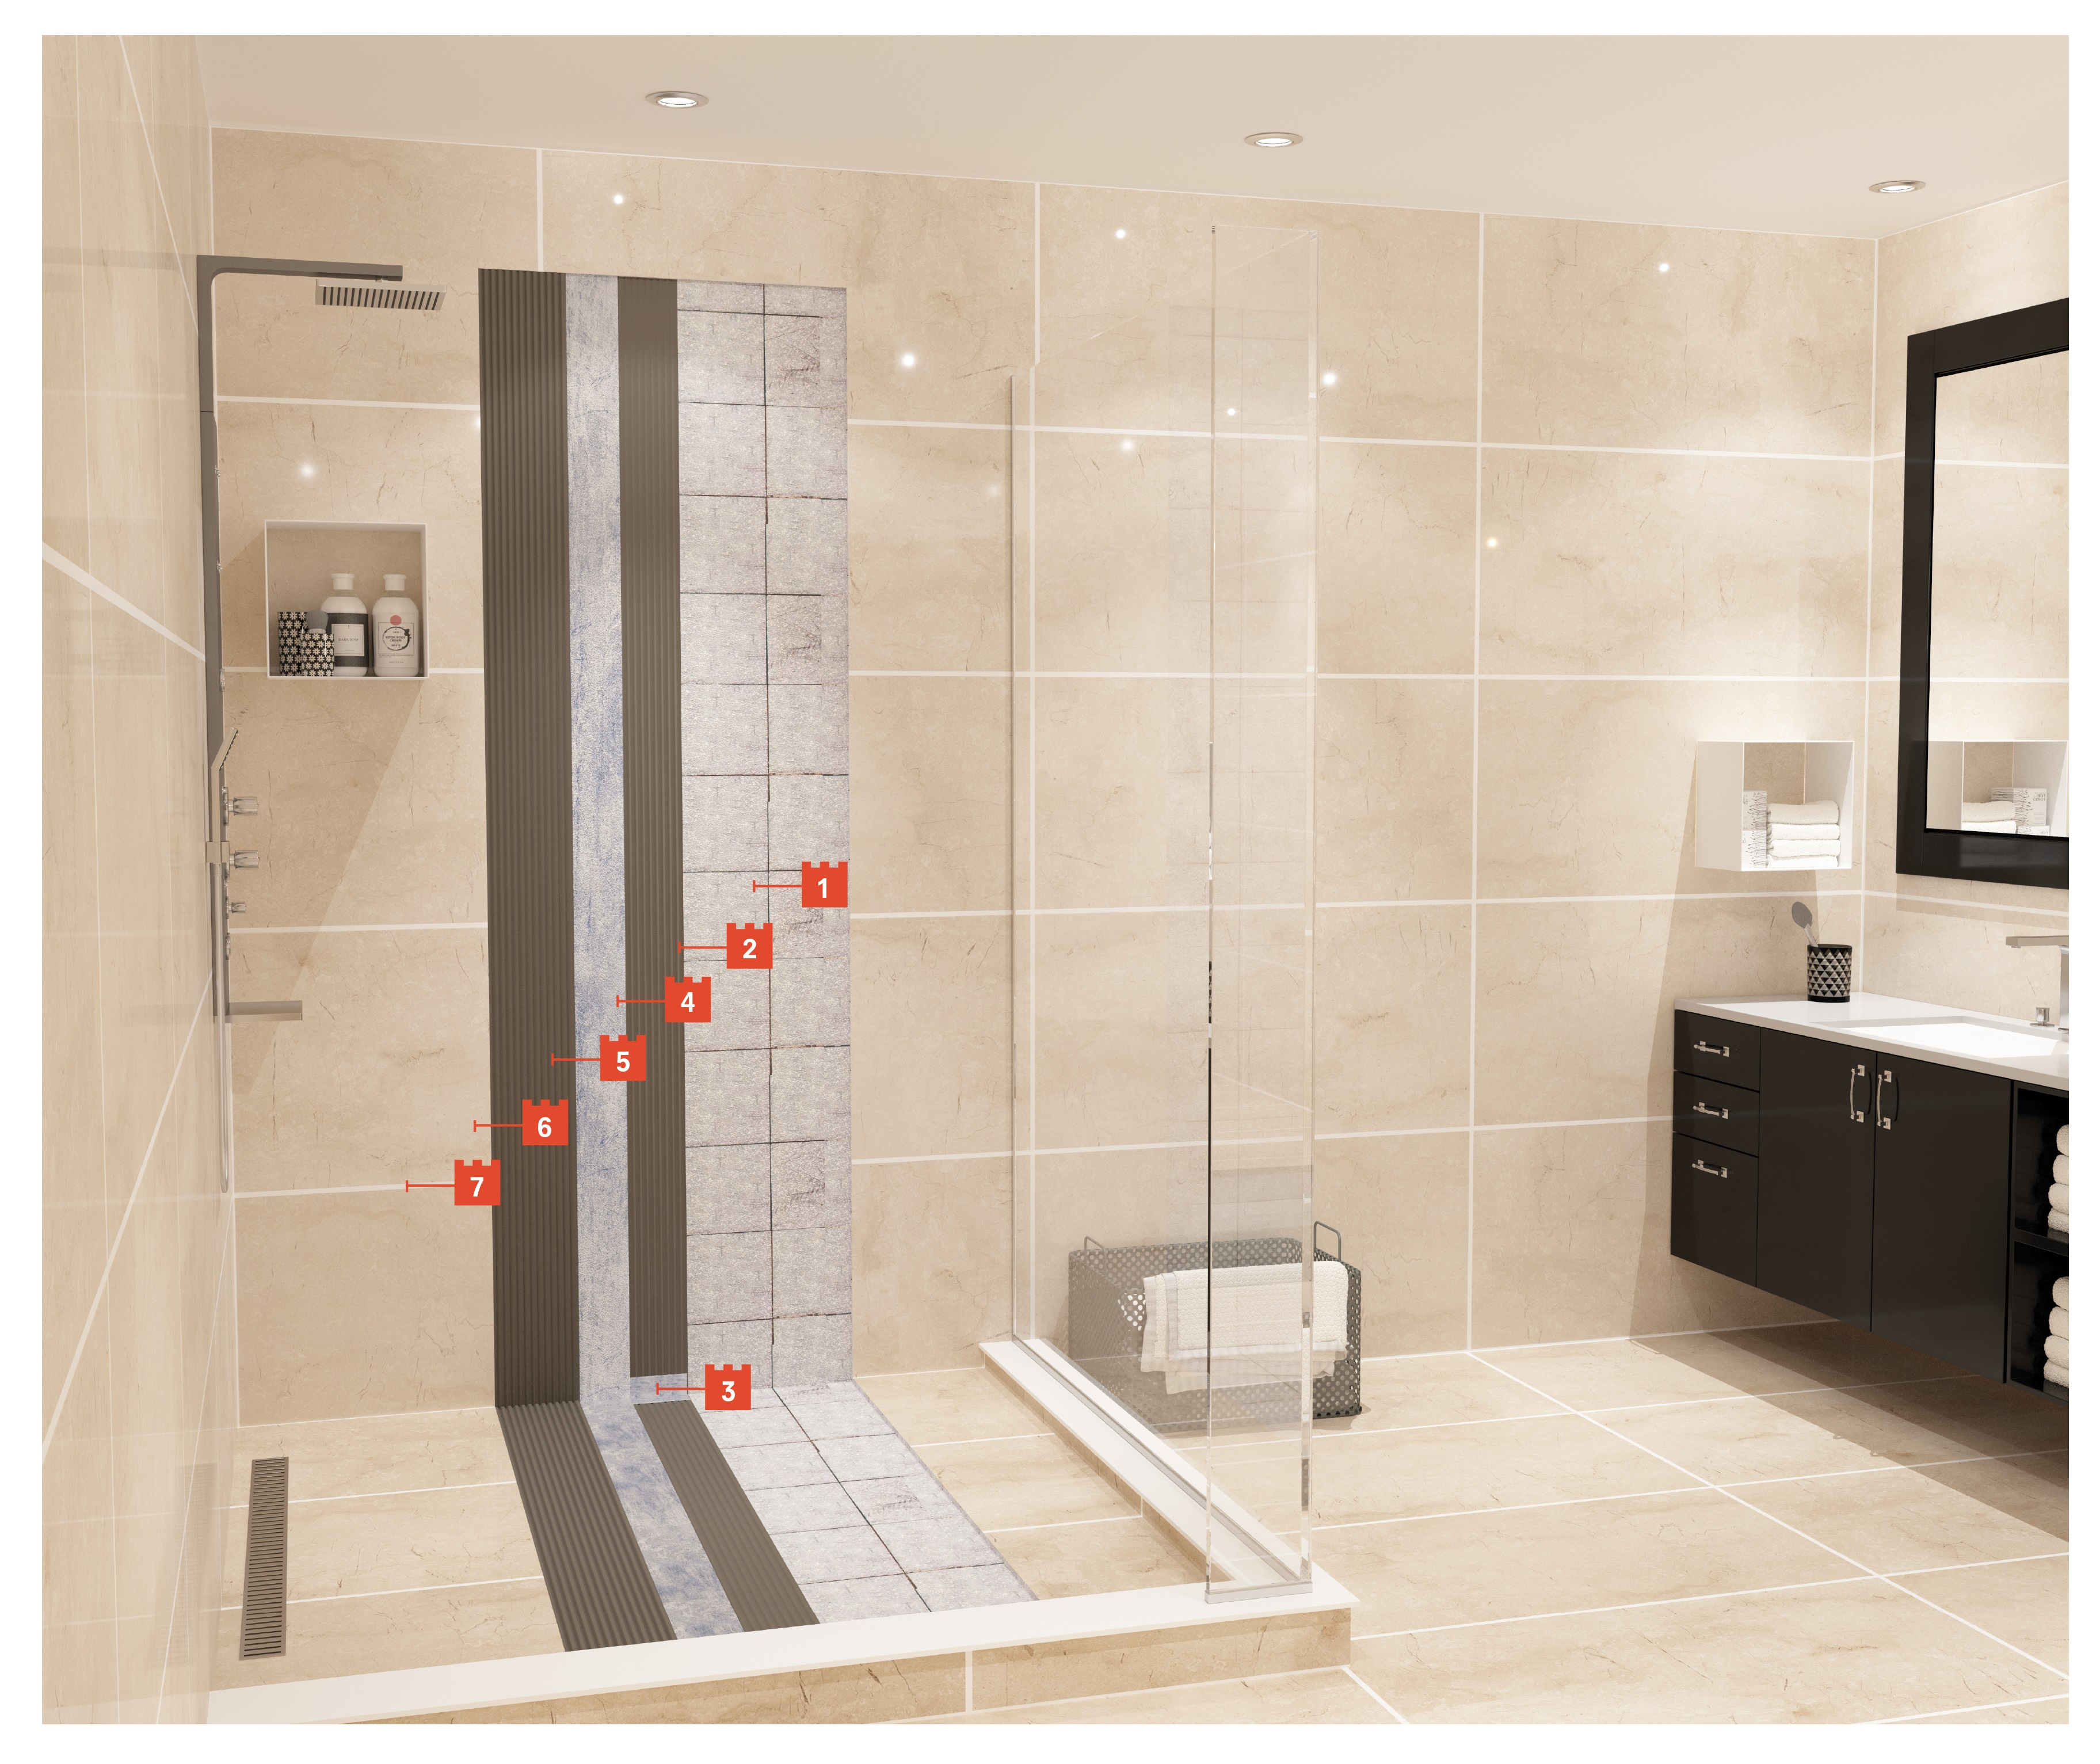 Rapid Solutions for Waterproofing & Ceramic Tile Application on Existing Tiles